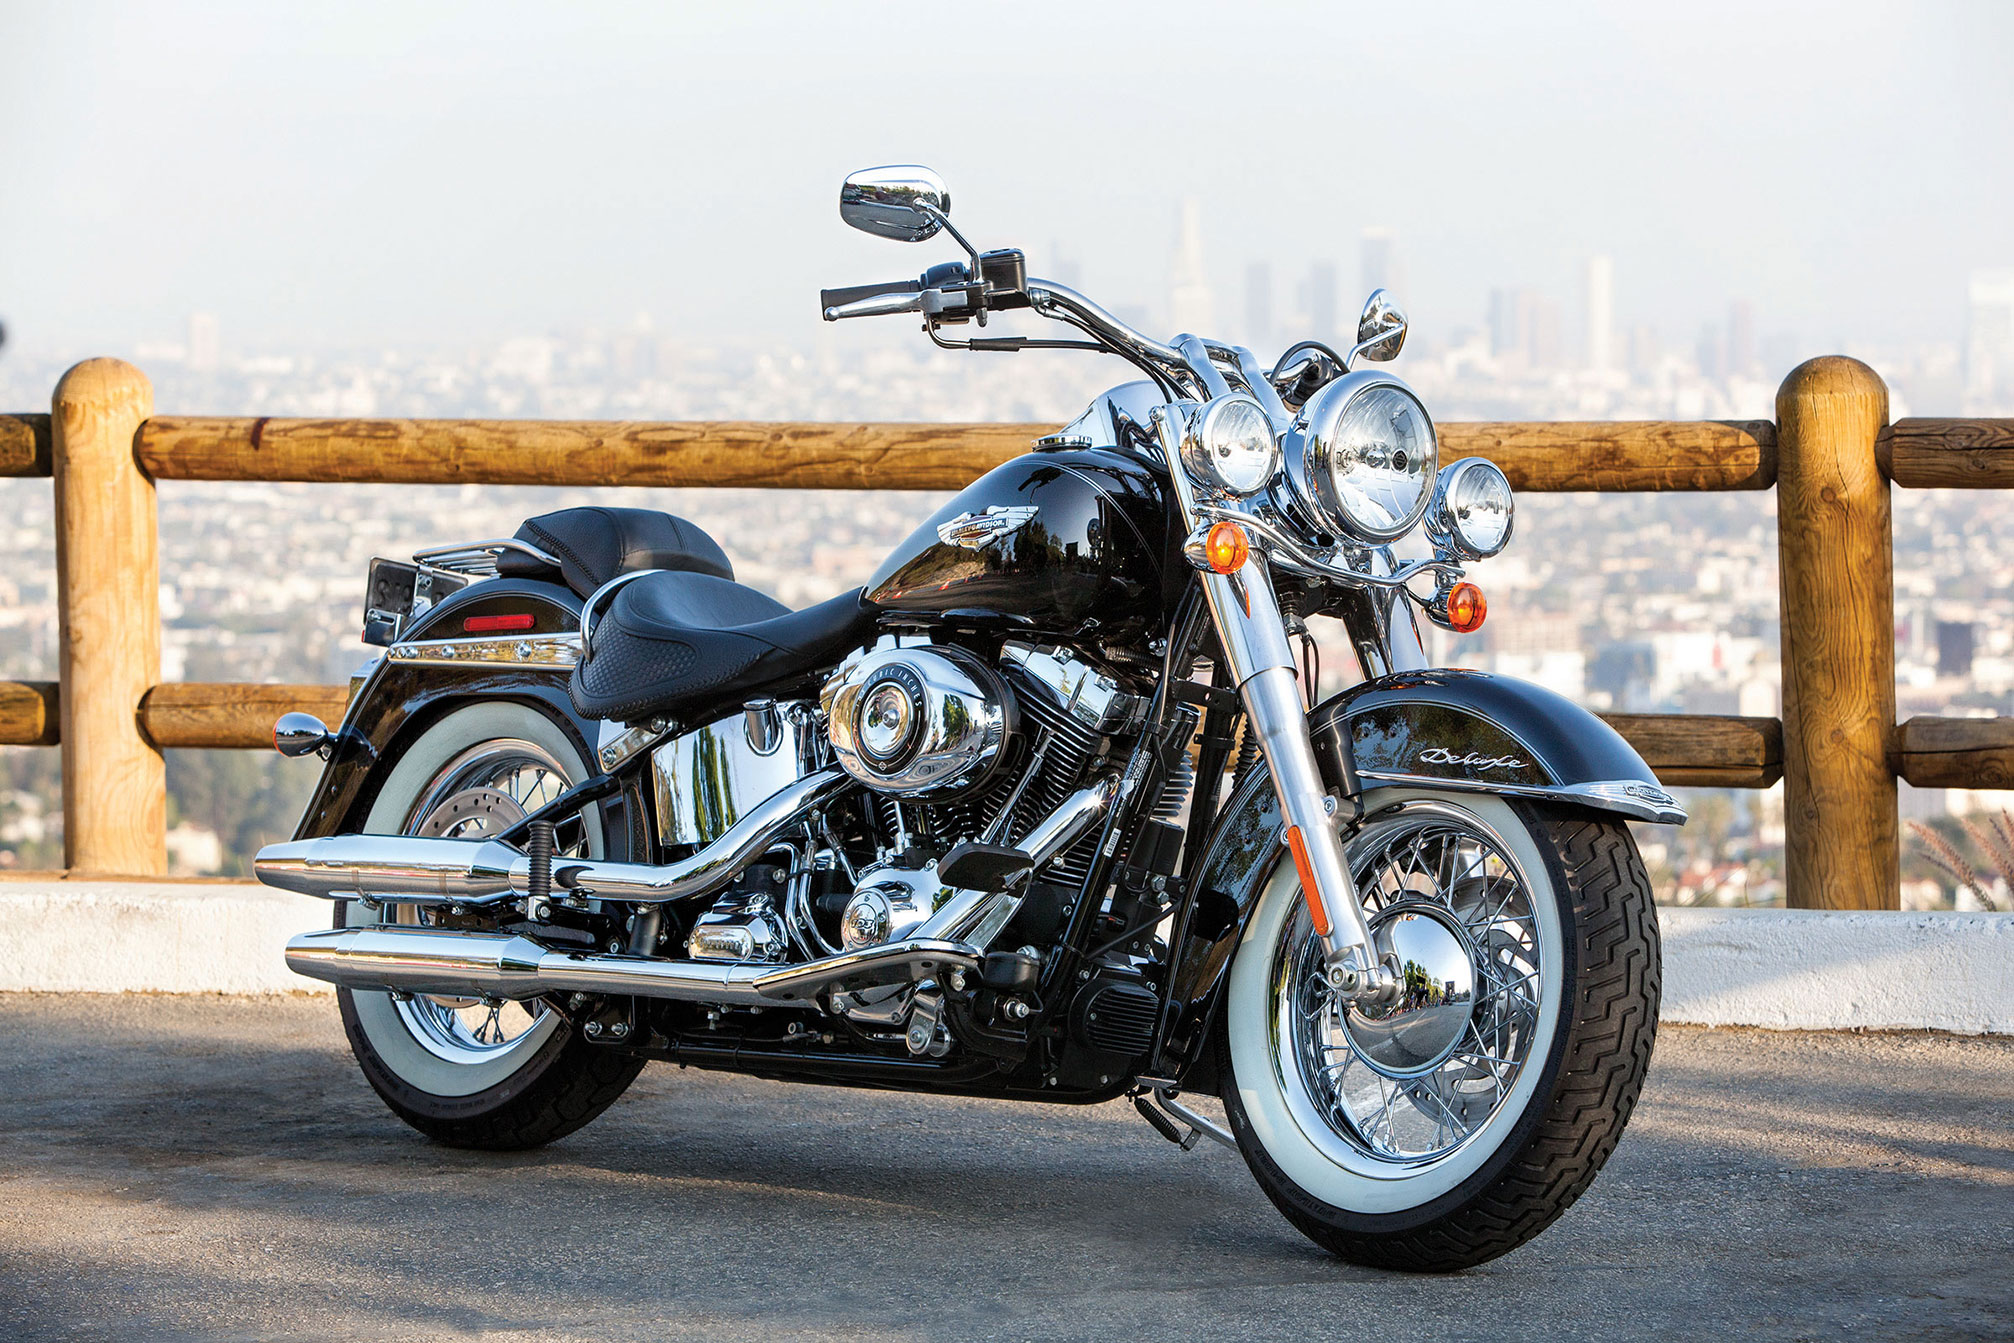 2014 harley davidson flstn softail deluxe review back to 2014 harley davidson motorcycle model review page publicscrutiny Gallery